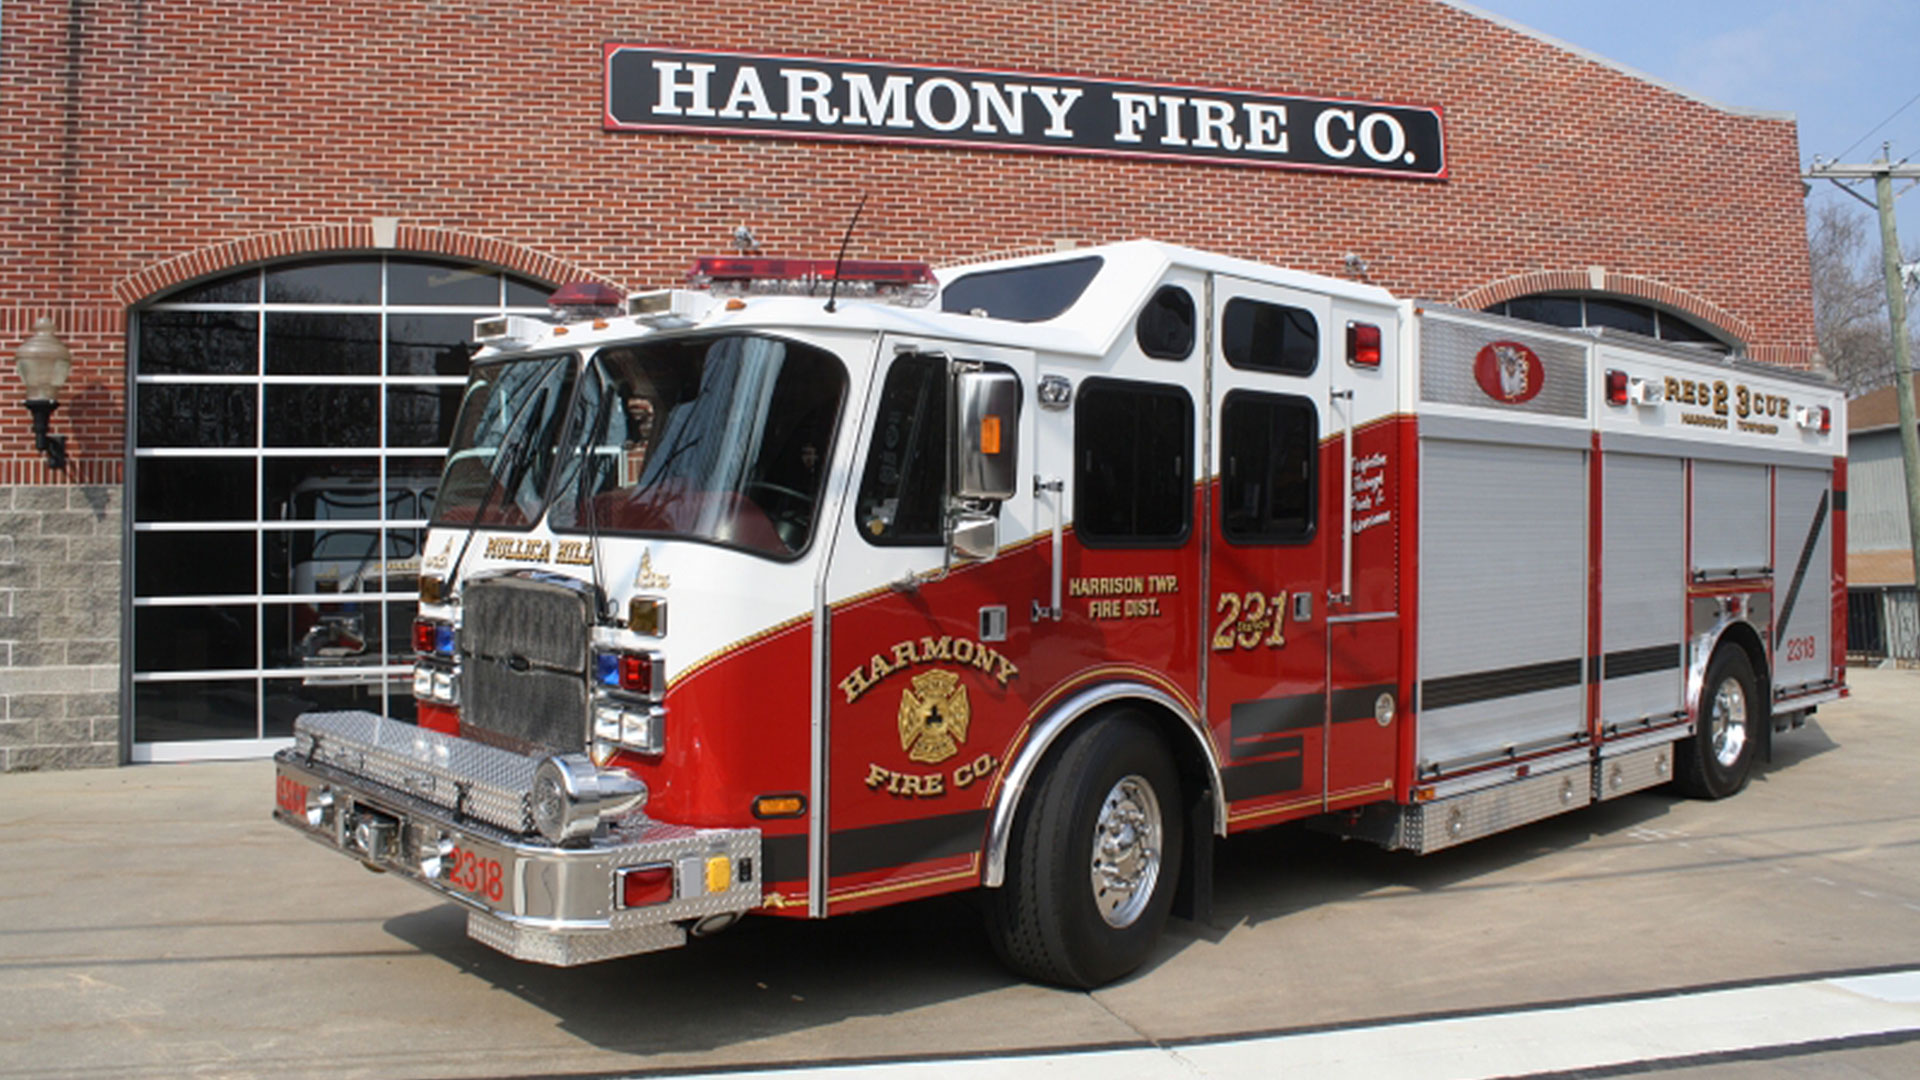 Fire District Election on Tuesday, April 20th – Please VOTE